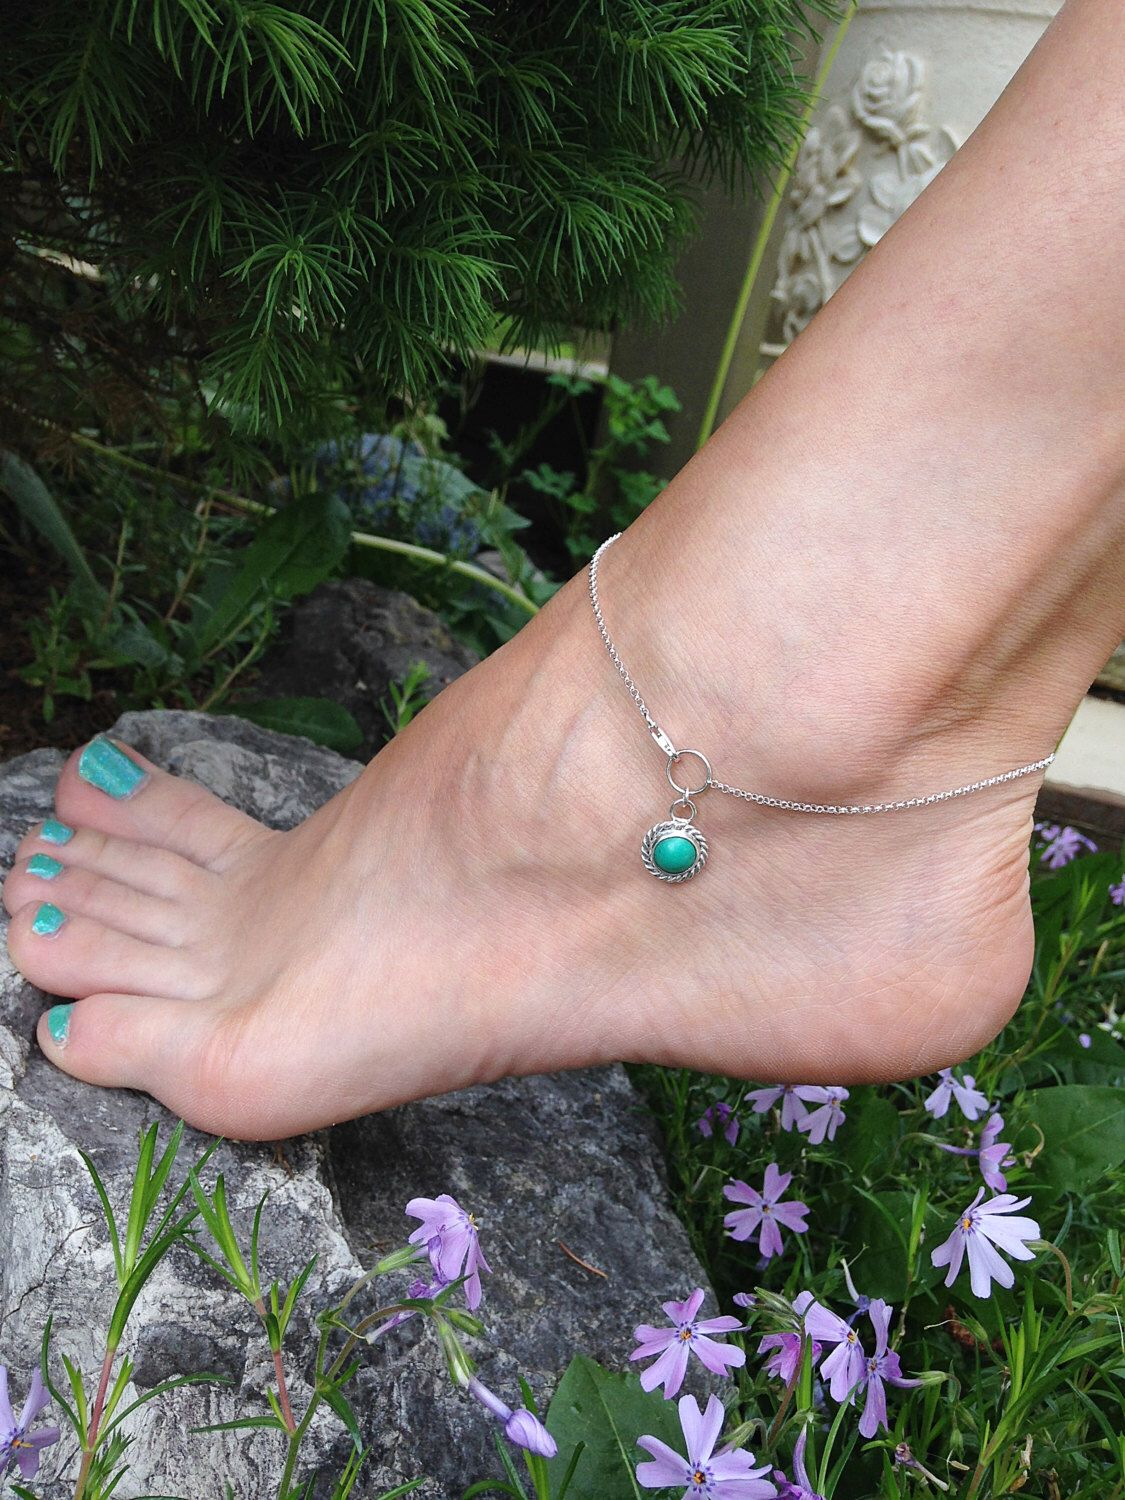 foot pin silver bracelet sterling beach anklet turquoise jewelry ankle bracelets handcrafted